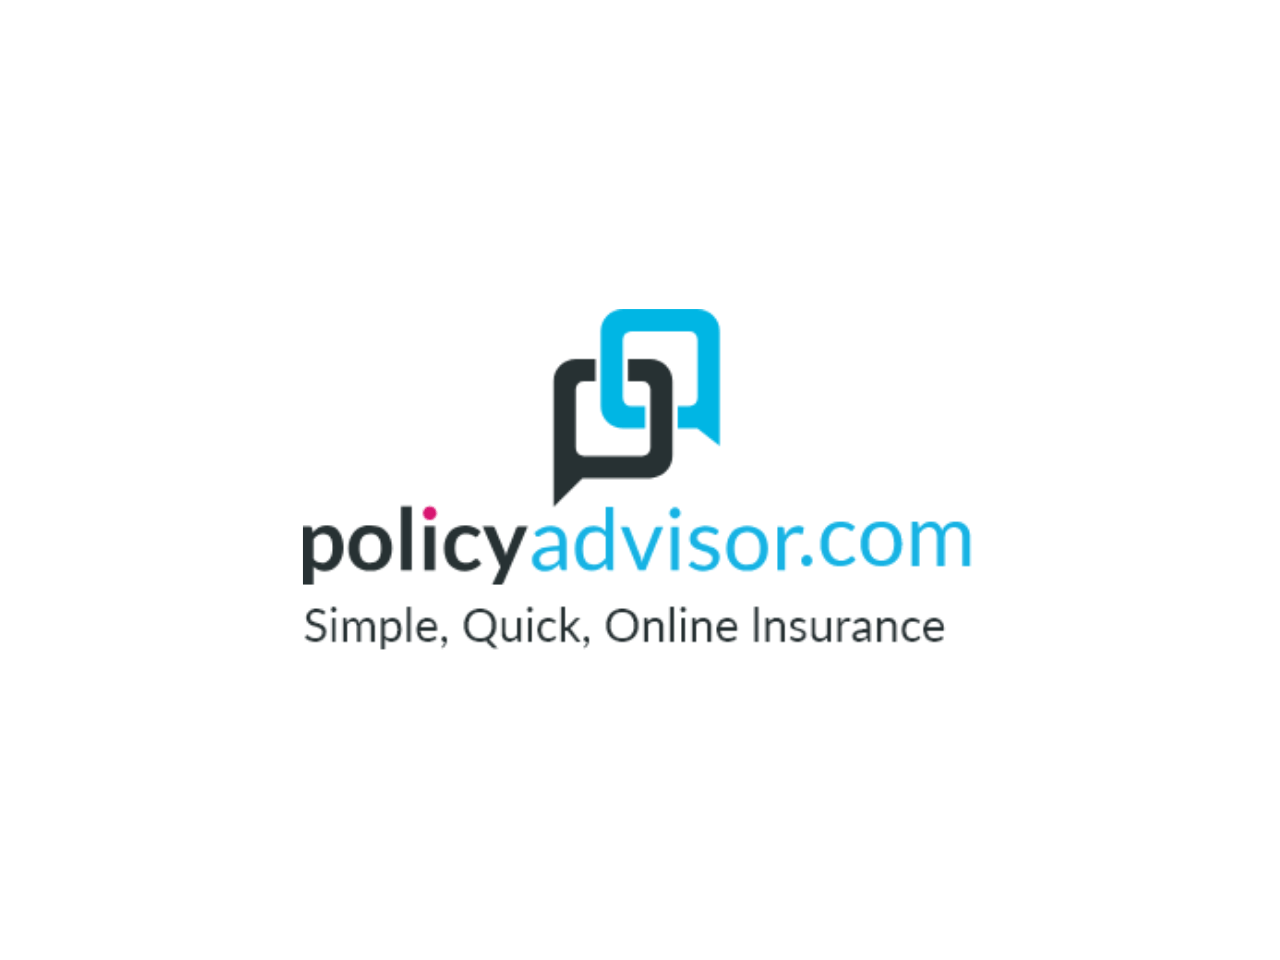 PolicyAdvisor Review